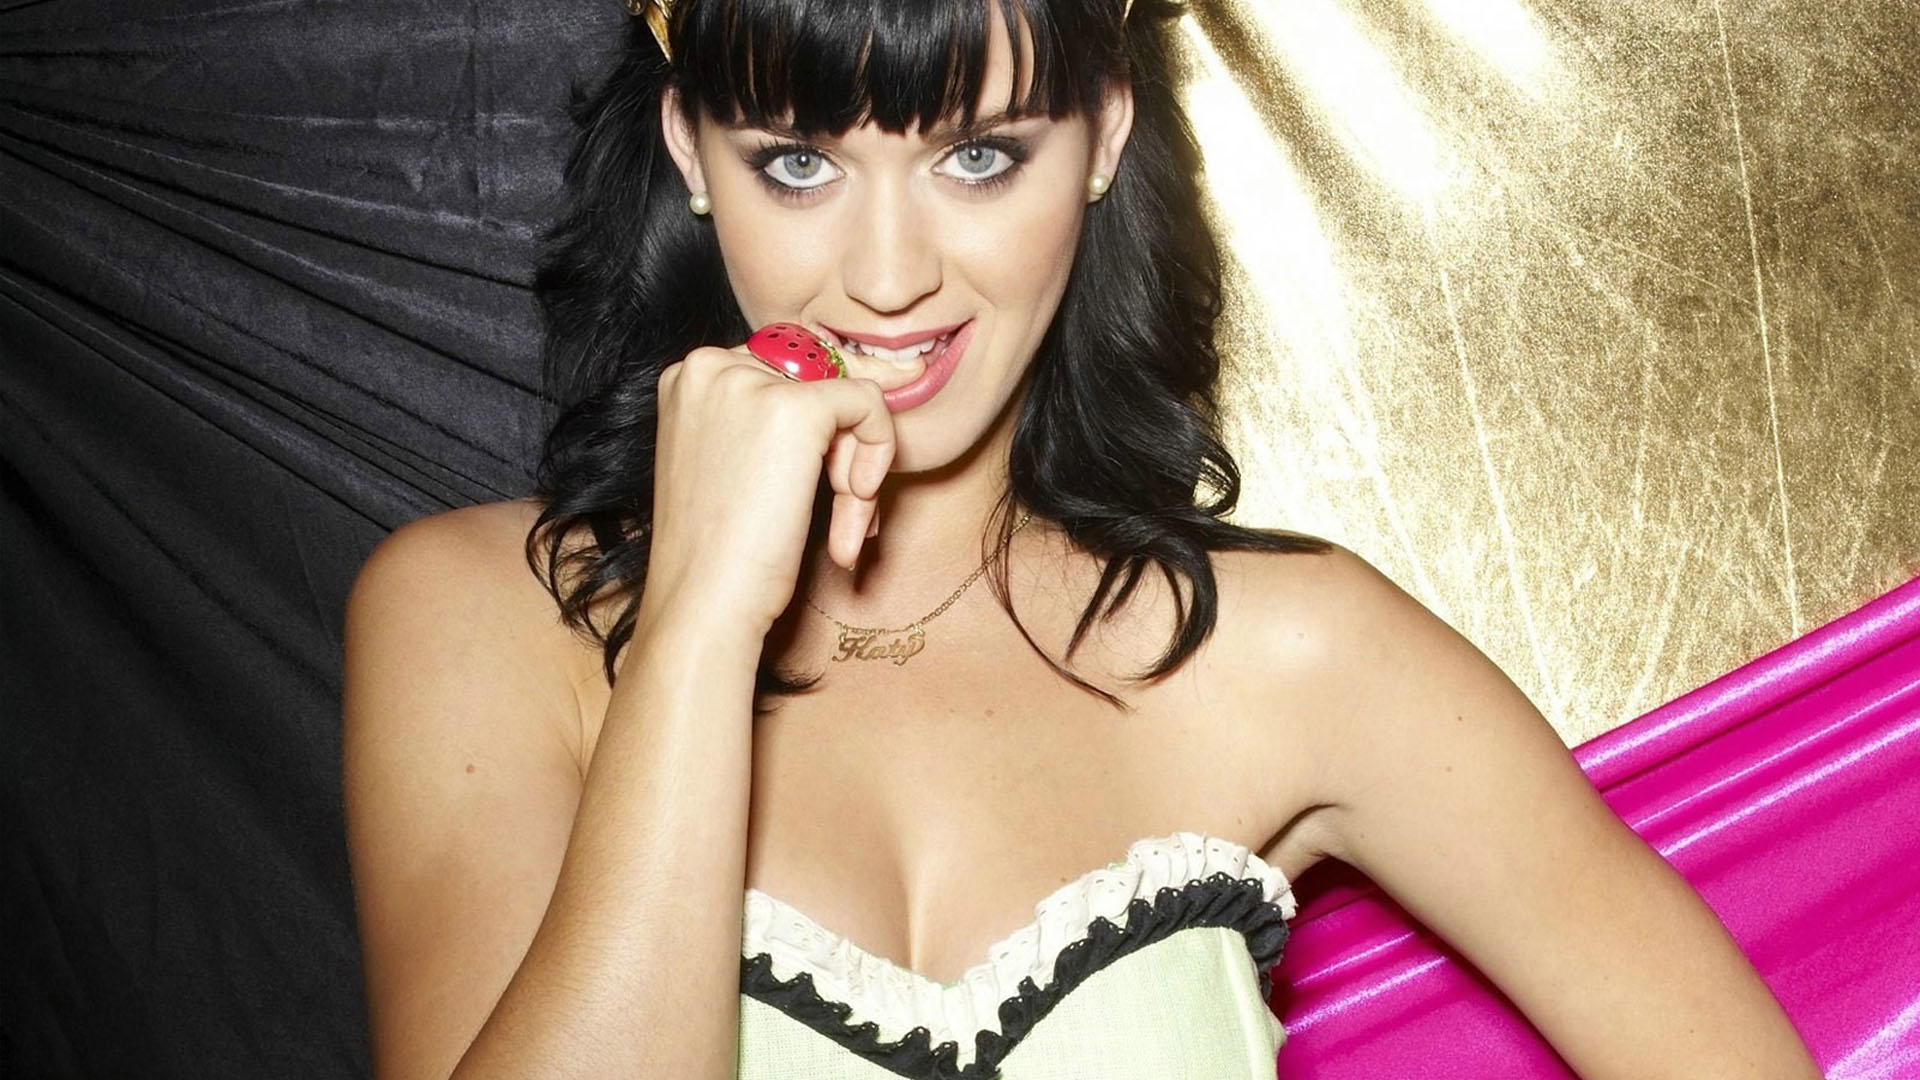 Katy Perry  Wallpapers  HD Wallpapers 1920x1080